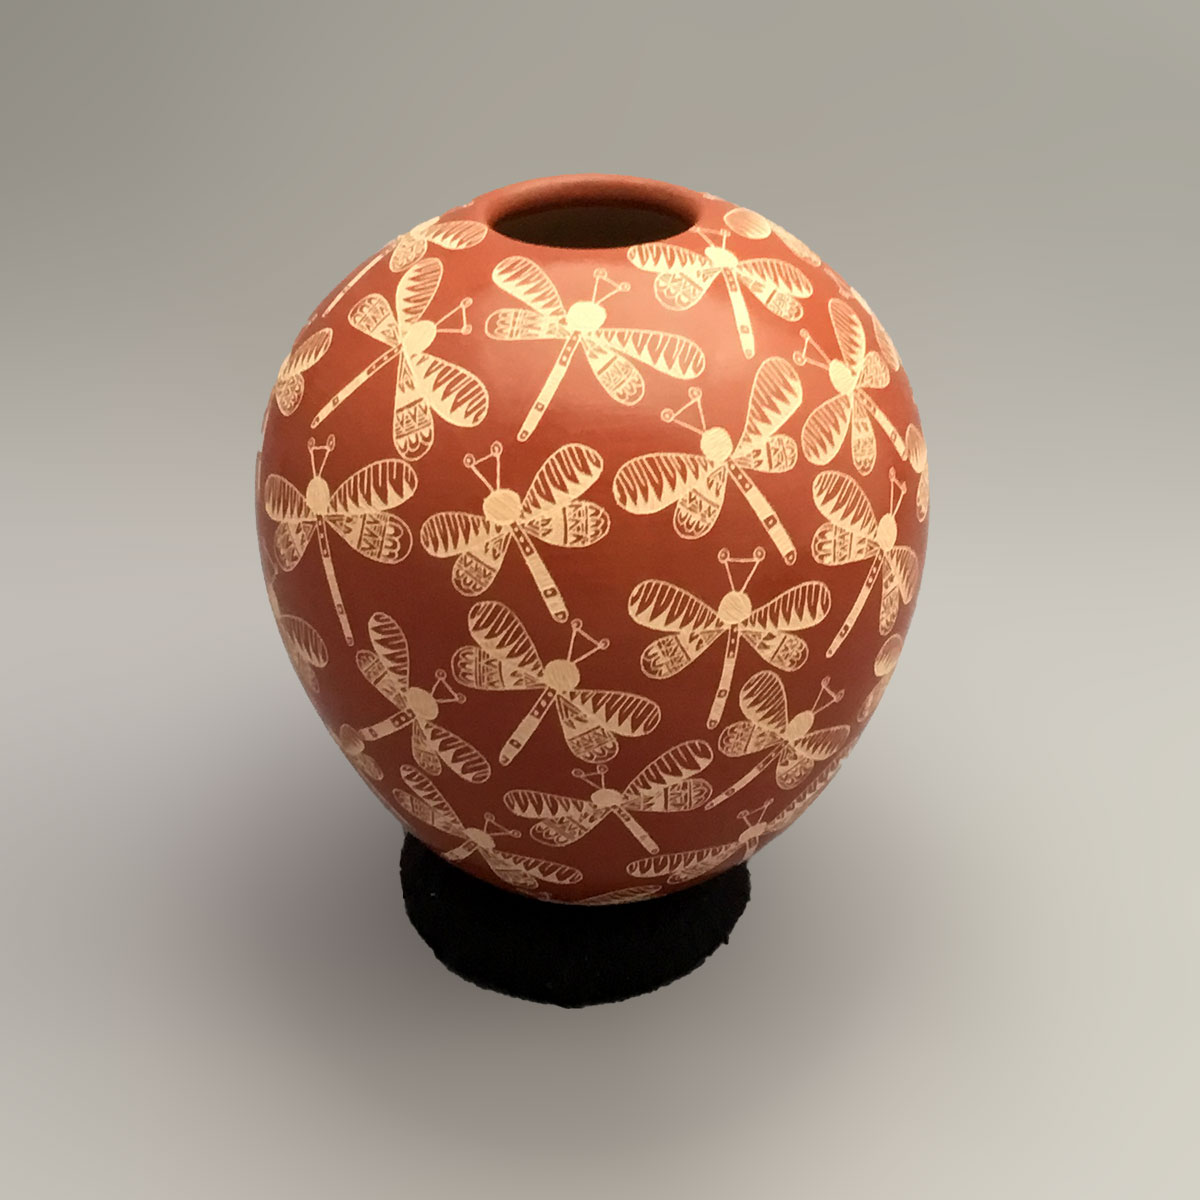 Paula Gallegos Bugarini Paula Gallegos Bugarini: Small Fine Red Seed Pot with Dragonflies Geometric